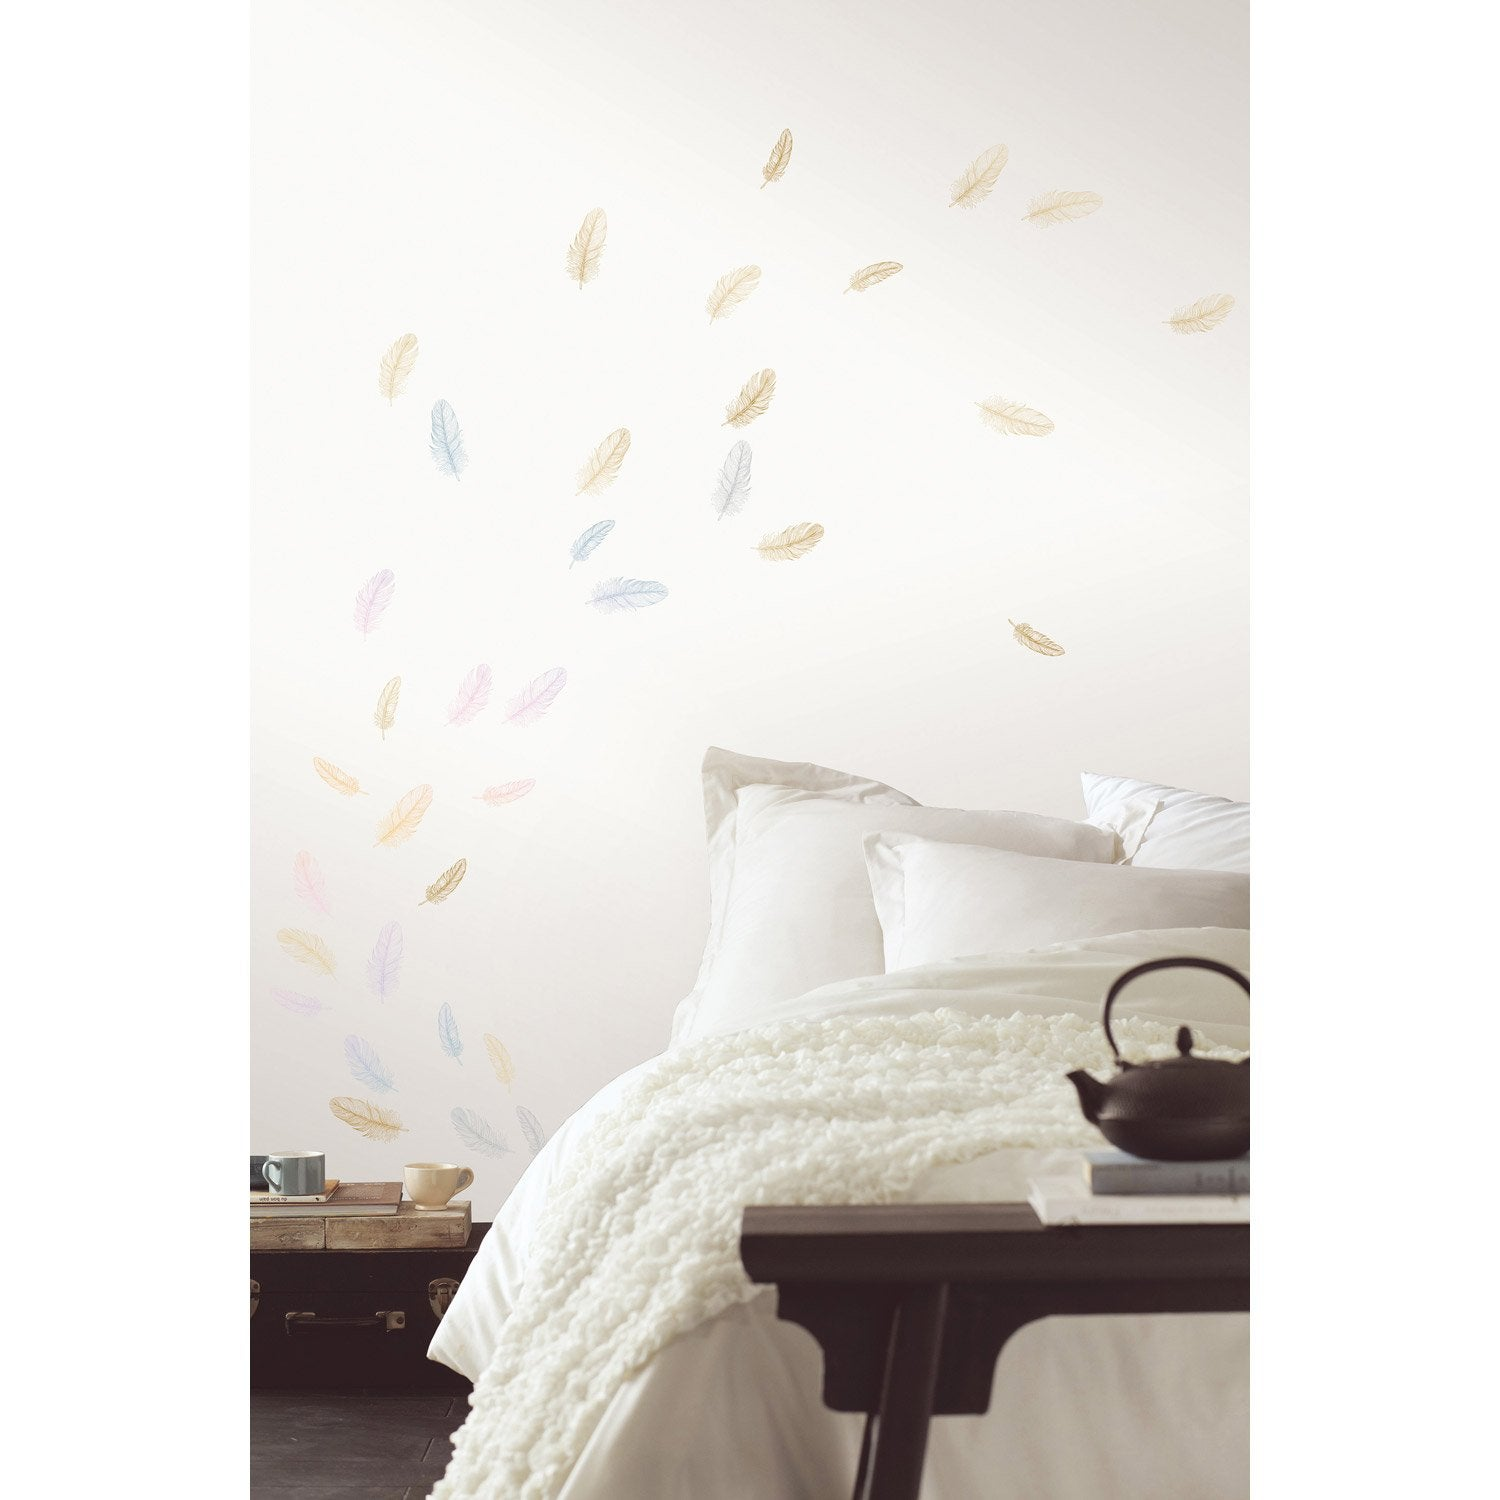 Sticker Feather 47 cm x 67 cm